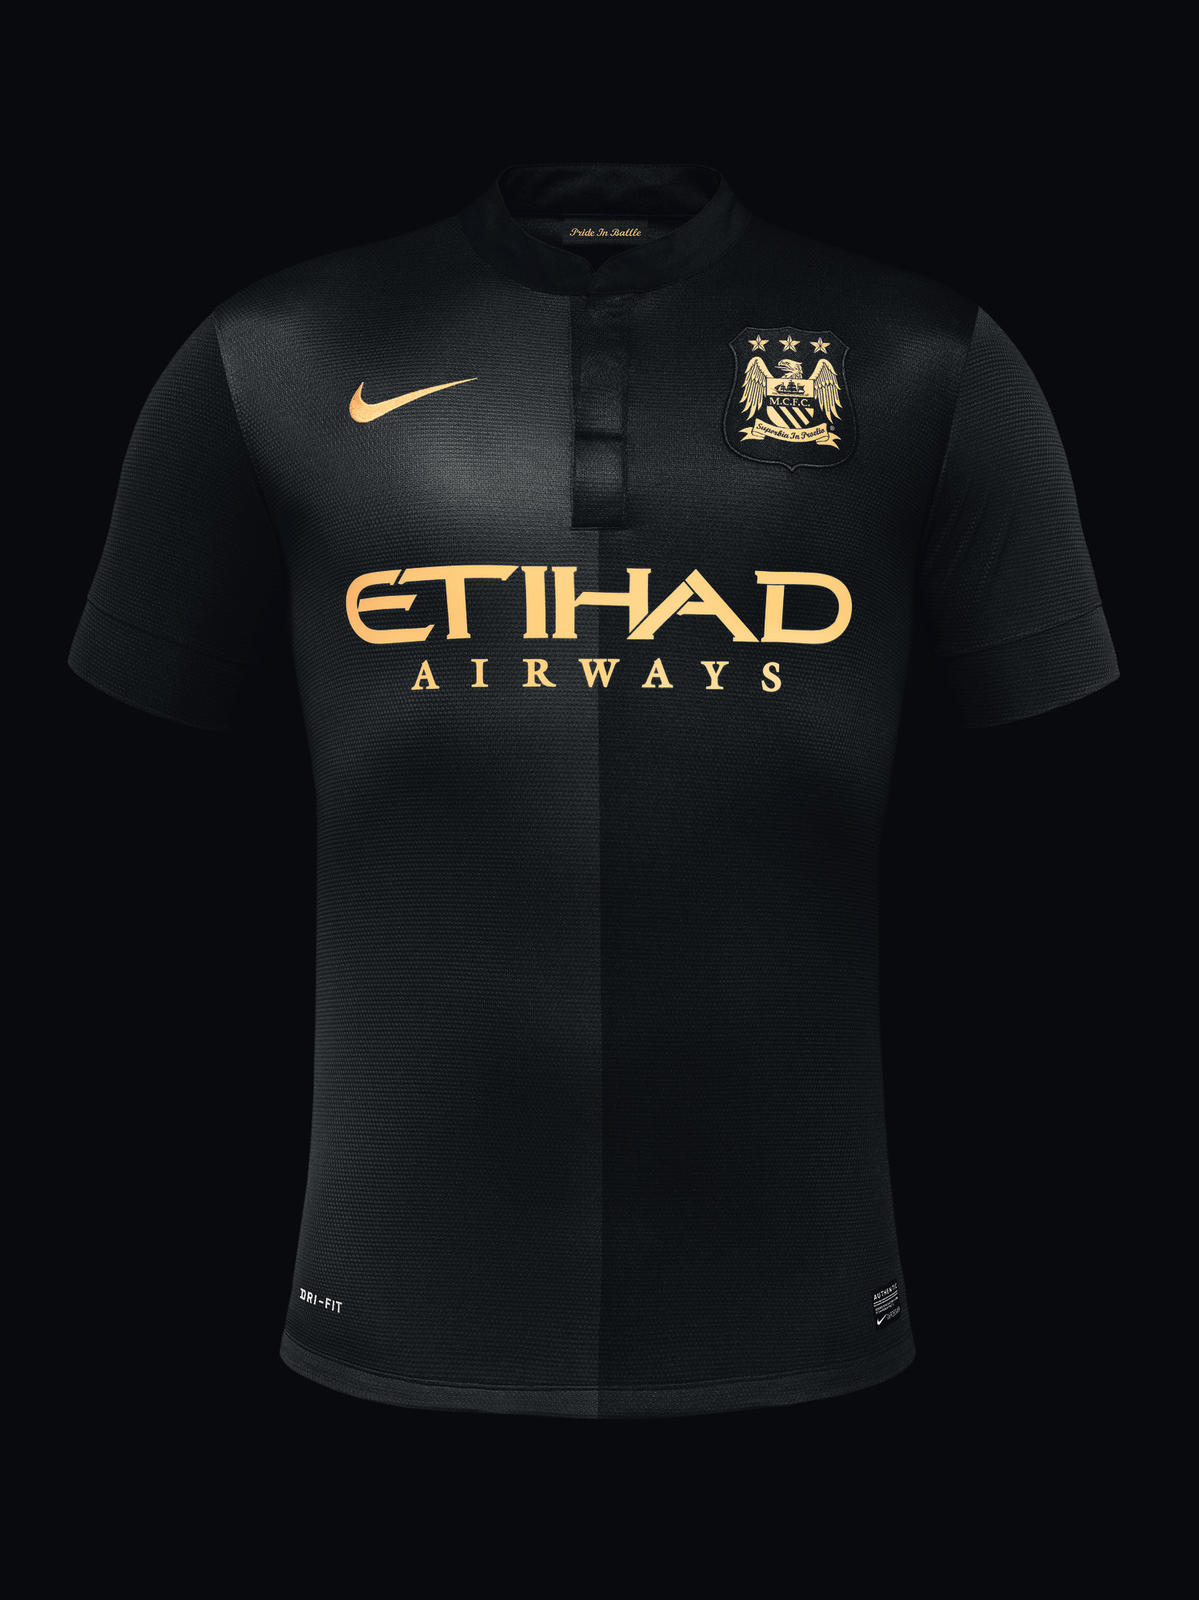 Kit Nike Upcoming and  City Manchester Reveal Away for